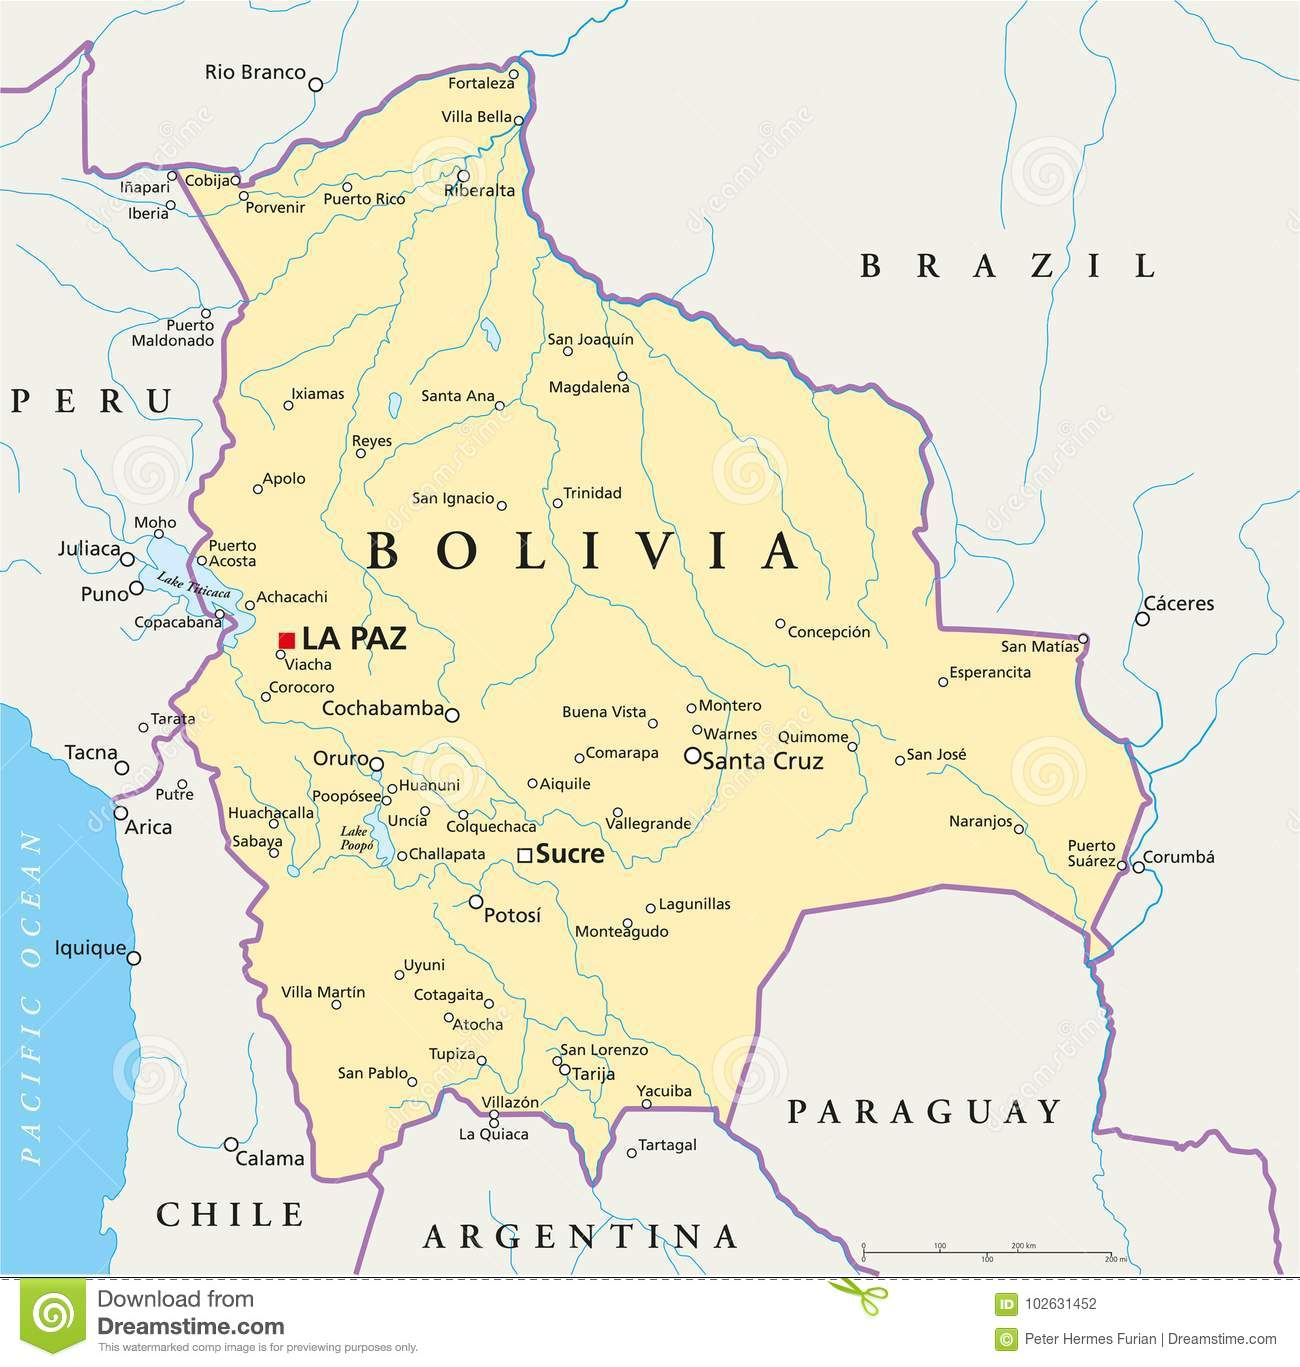 History of Peru  Ecuador and Bolivia  1837 CE together with  together with Map Of Latin America Cities New Map Bolivia In south America in addition Map of Bolivia   Bolivia Cities Map also  also Economic Activity Bolivia Map With Cities – efcopower info besides Bolivia Map Blank Political With Cities For On World X as well Map of latin america cities and travel information   Download free besides Vector Map Bolivia Important Cities Roads Stock Vector  Royalty Free together with  besides Blank Map Of Bolivia cities in bolivia bolivia cities map 800 X 834 besides  as well Cities in Peru  Map of Peru Cities besides  likewise Health Information for Travelers to Bolivia   Traveler view also Bolivia   History  Geography  People    Language   Britannica. on bolivia cities map